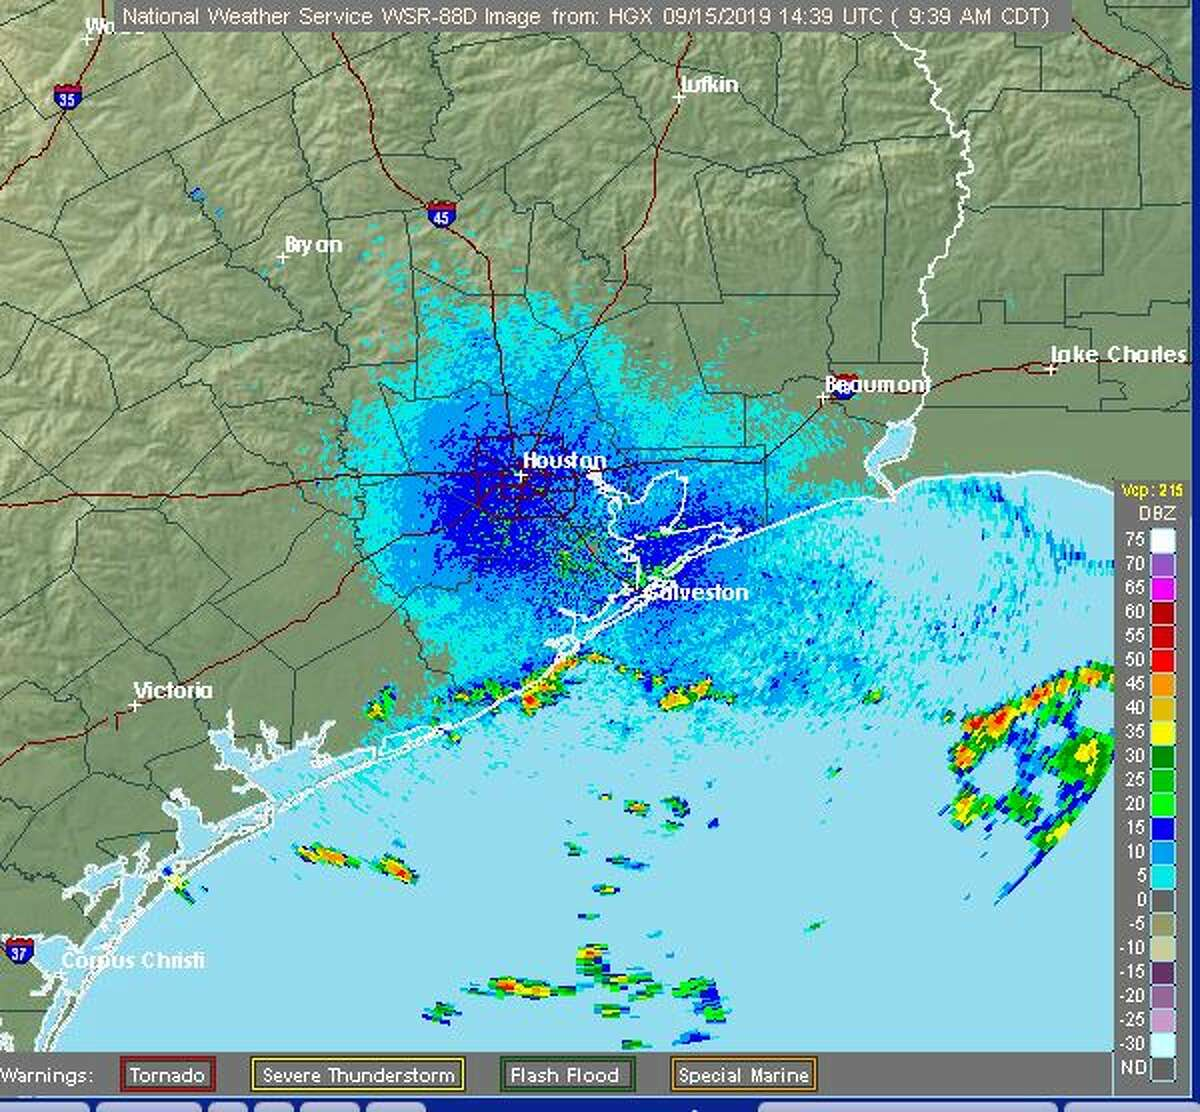 A tropical disturbance swirling off the Gulf Coast is expected to bring